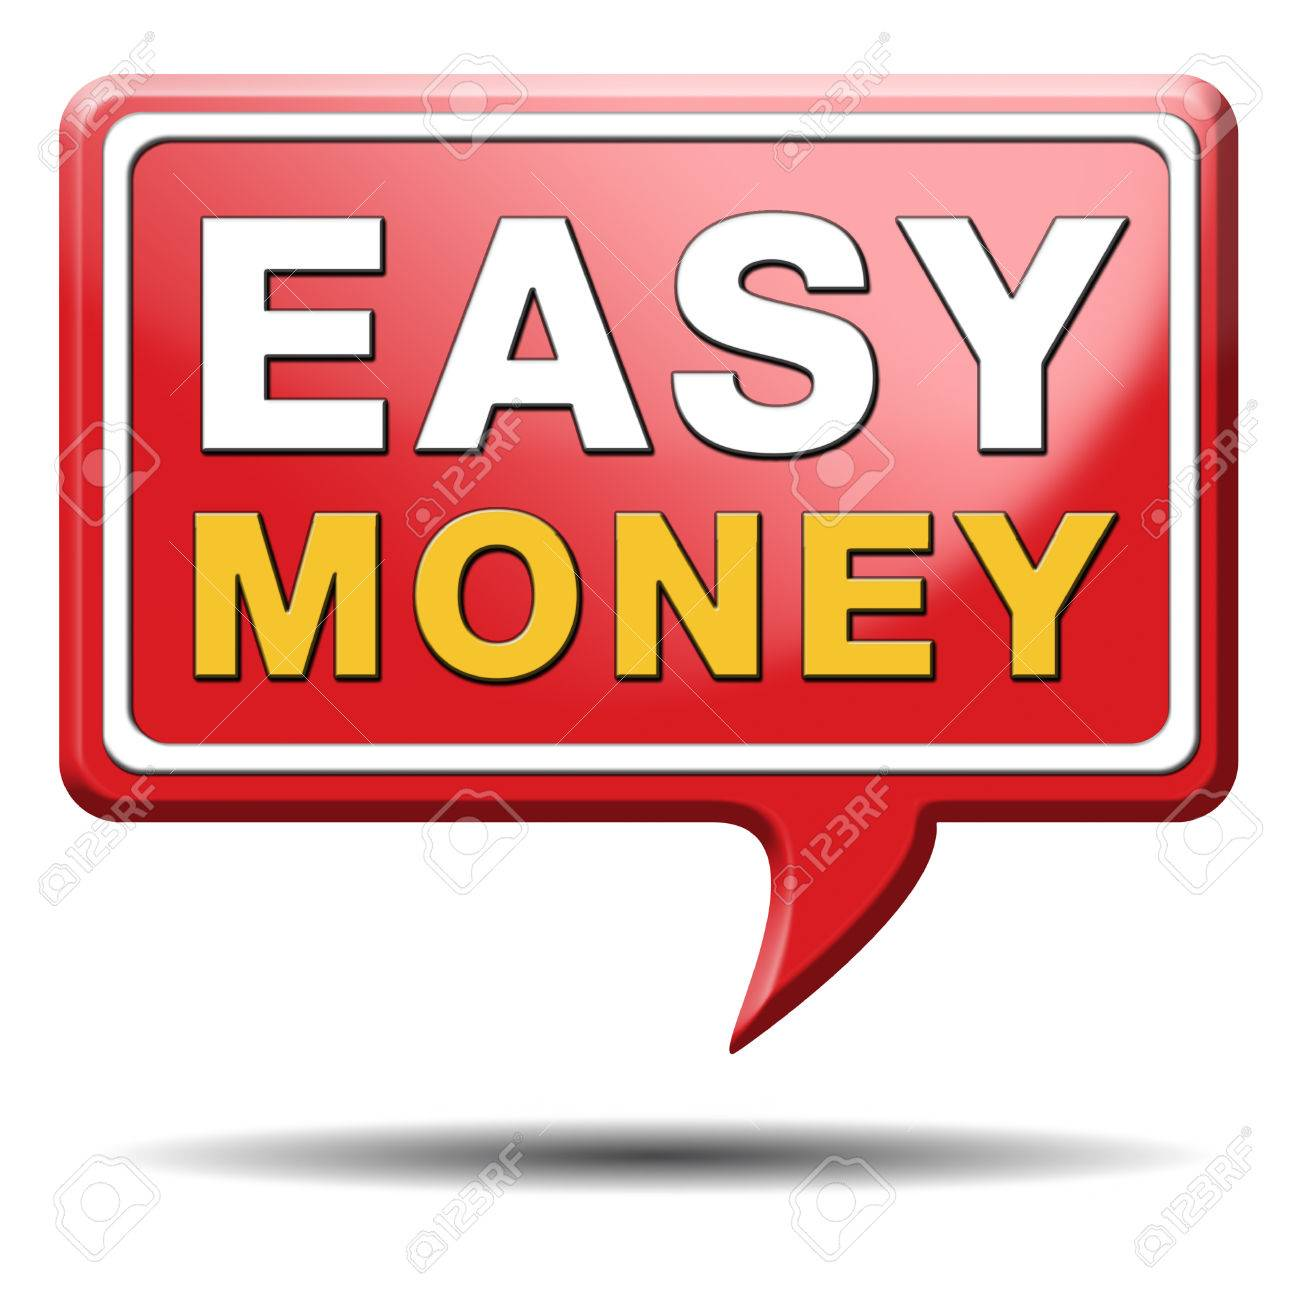 How can i make quick easy money online ?